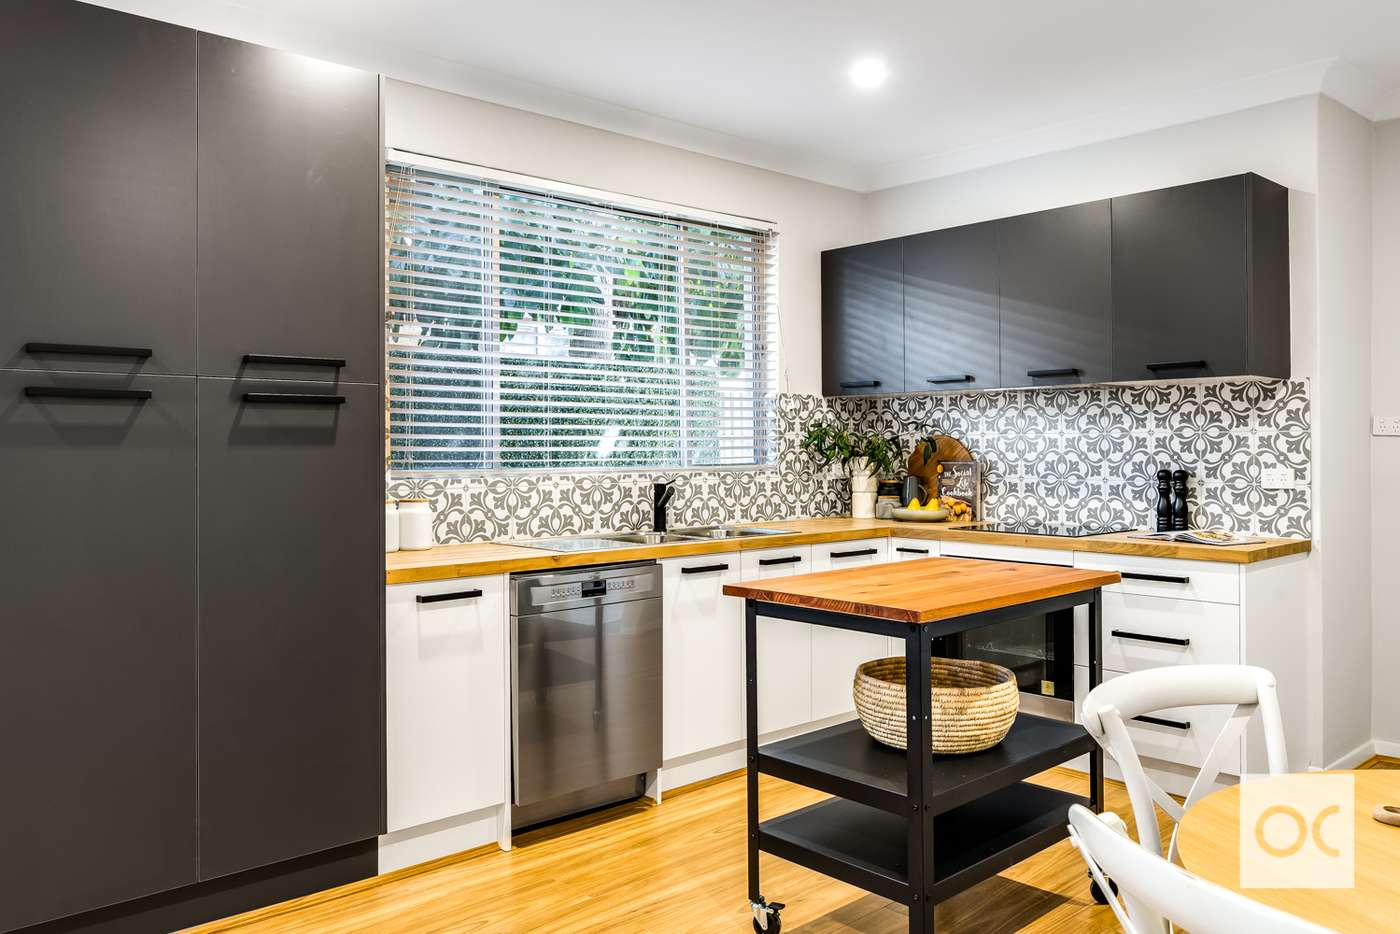 Main view of Homely house listing, 6 King Street, Mile End SA 5031